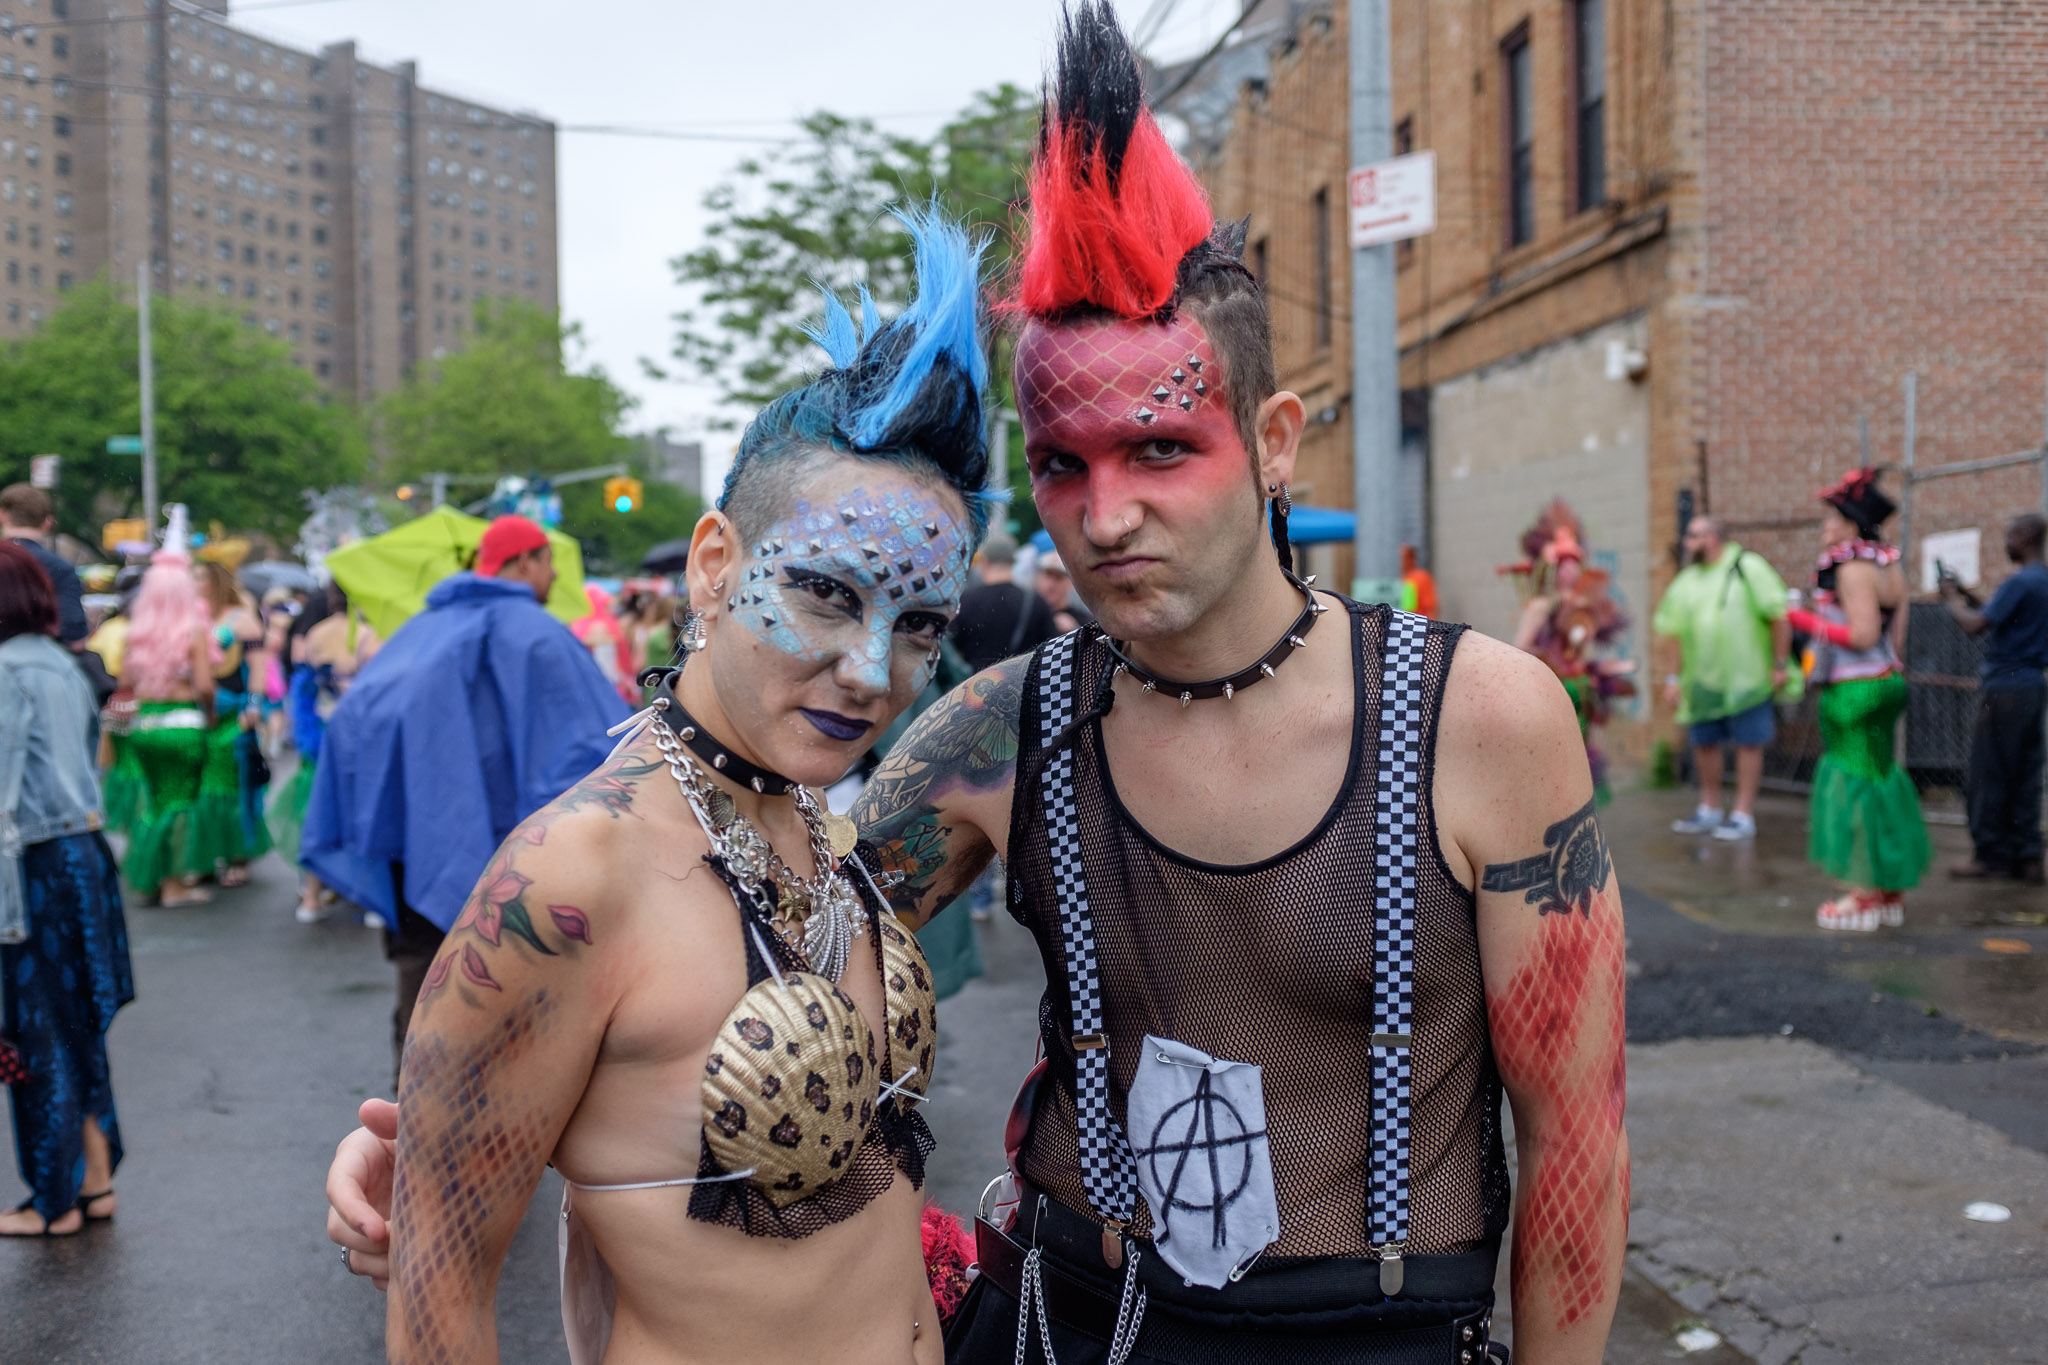 Coney Island Mermaid Parade 2015!